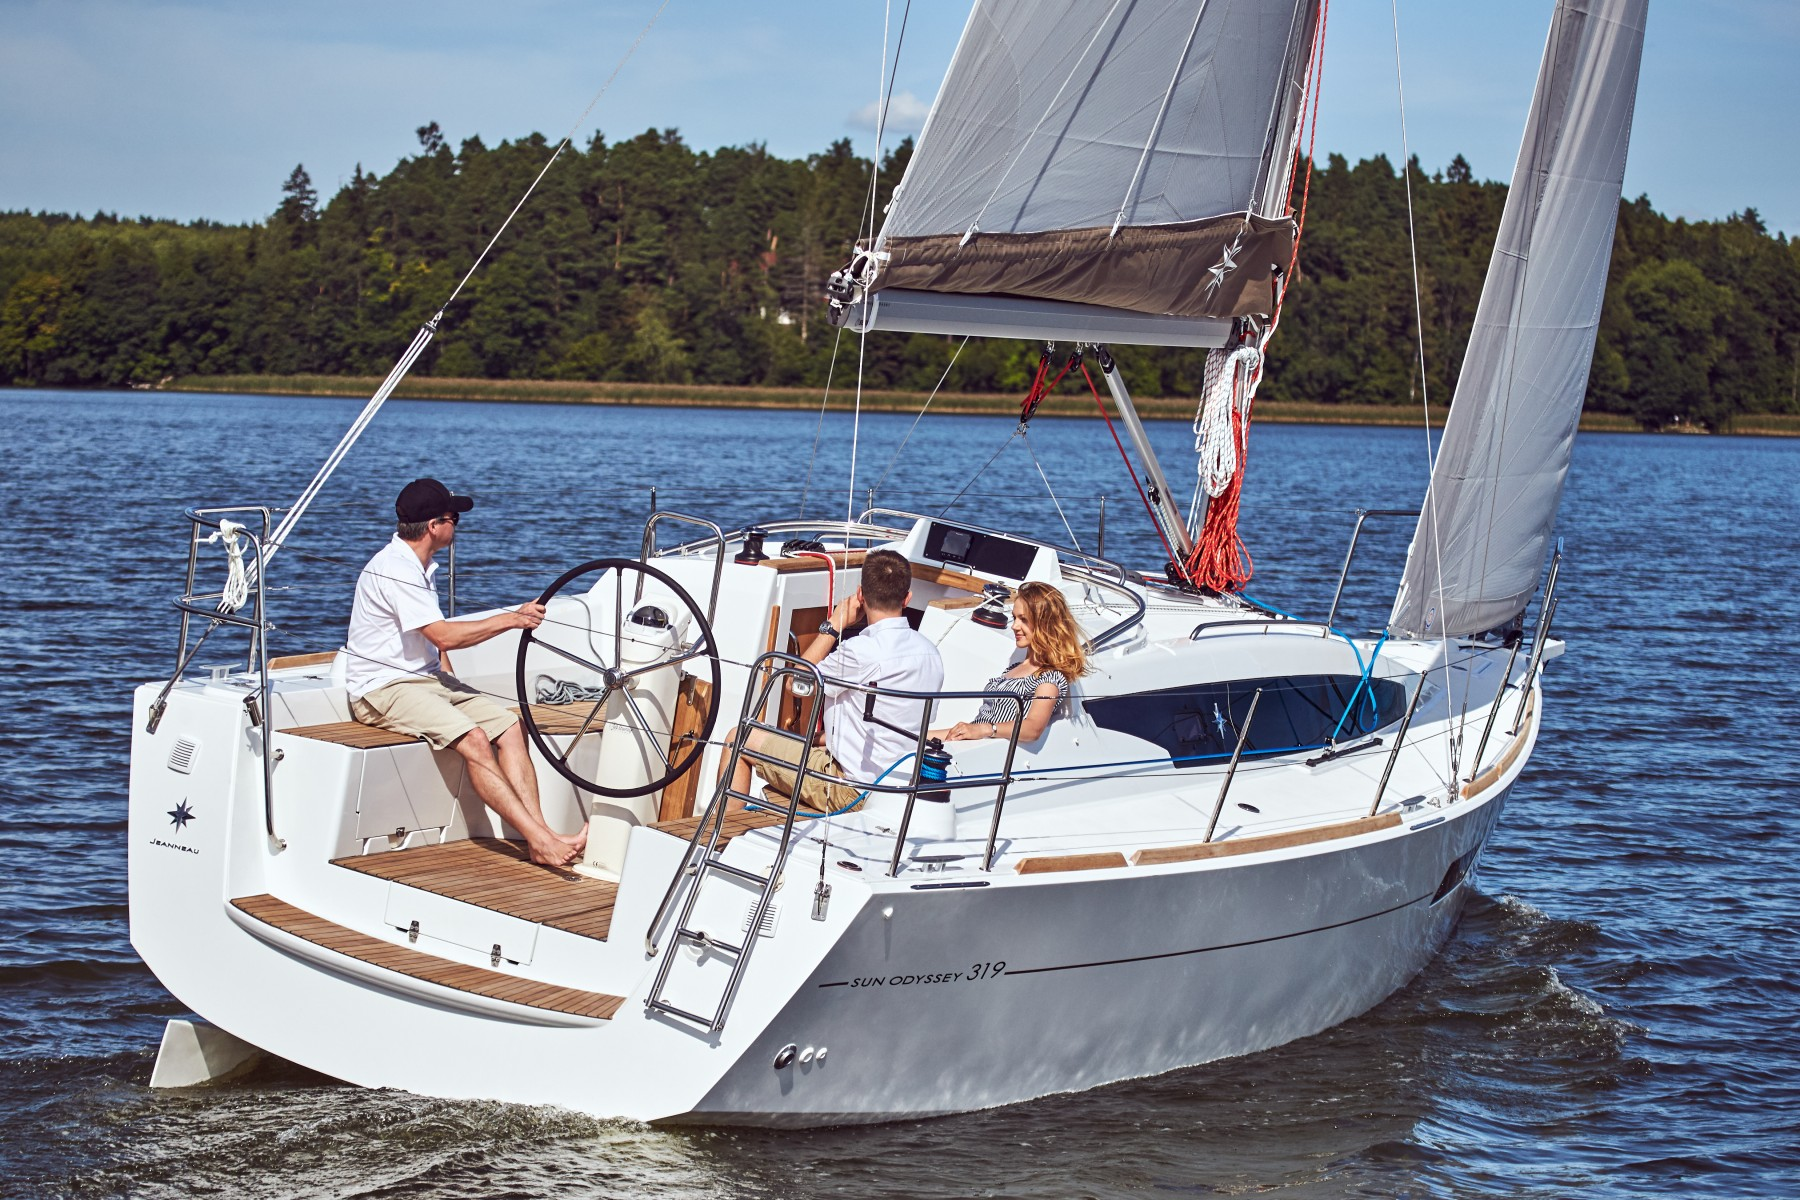 Three people on Jeanneau Sun Odyssey 319 while it sails